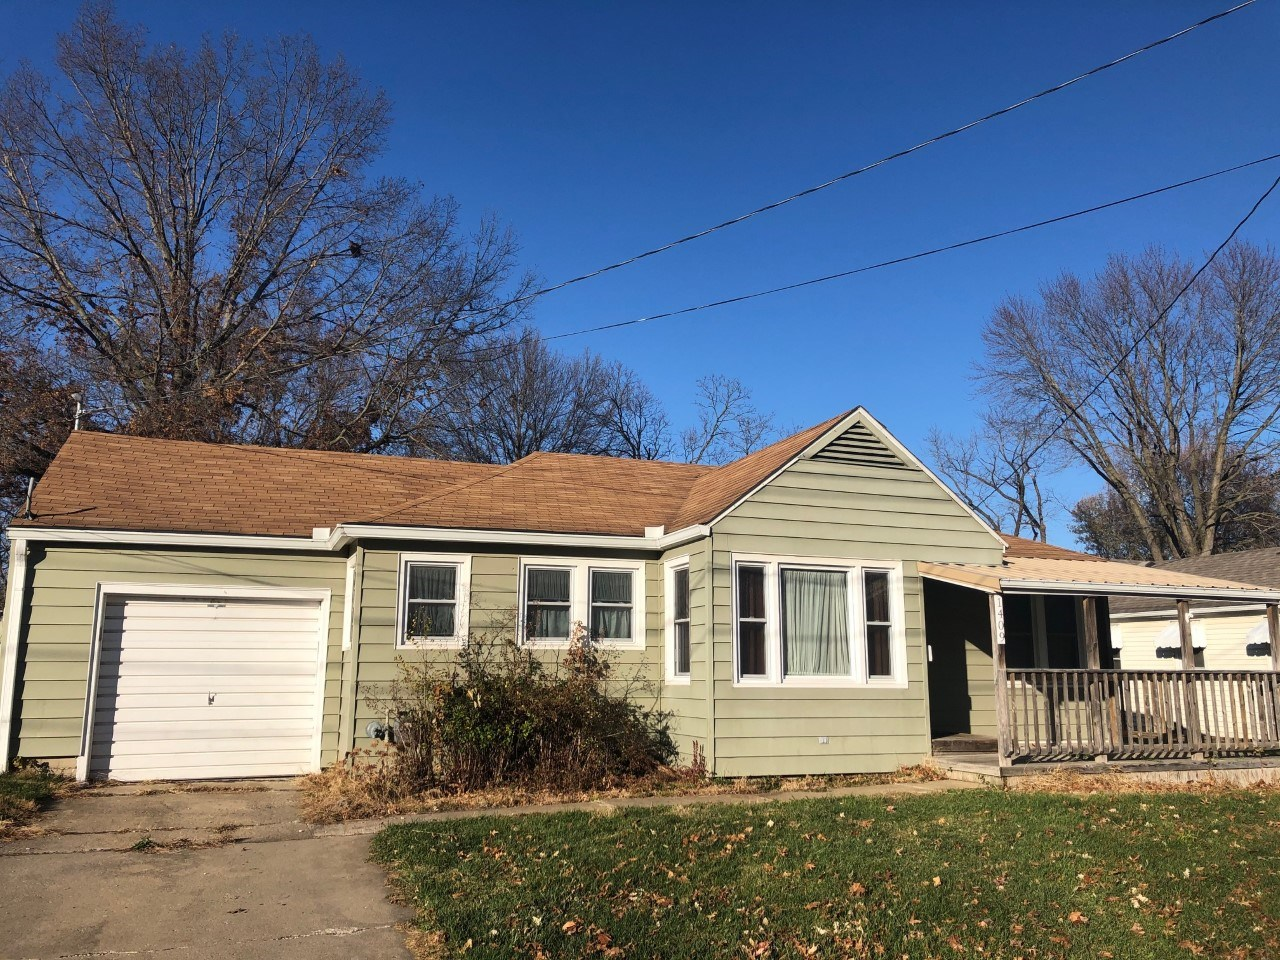 For Sale Ranch Home Dead End Street Chillicothe, MO